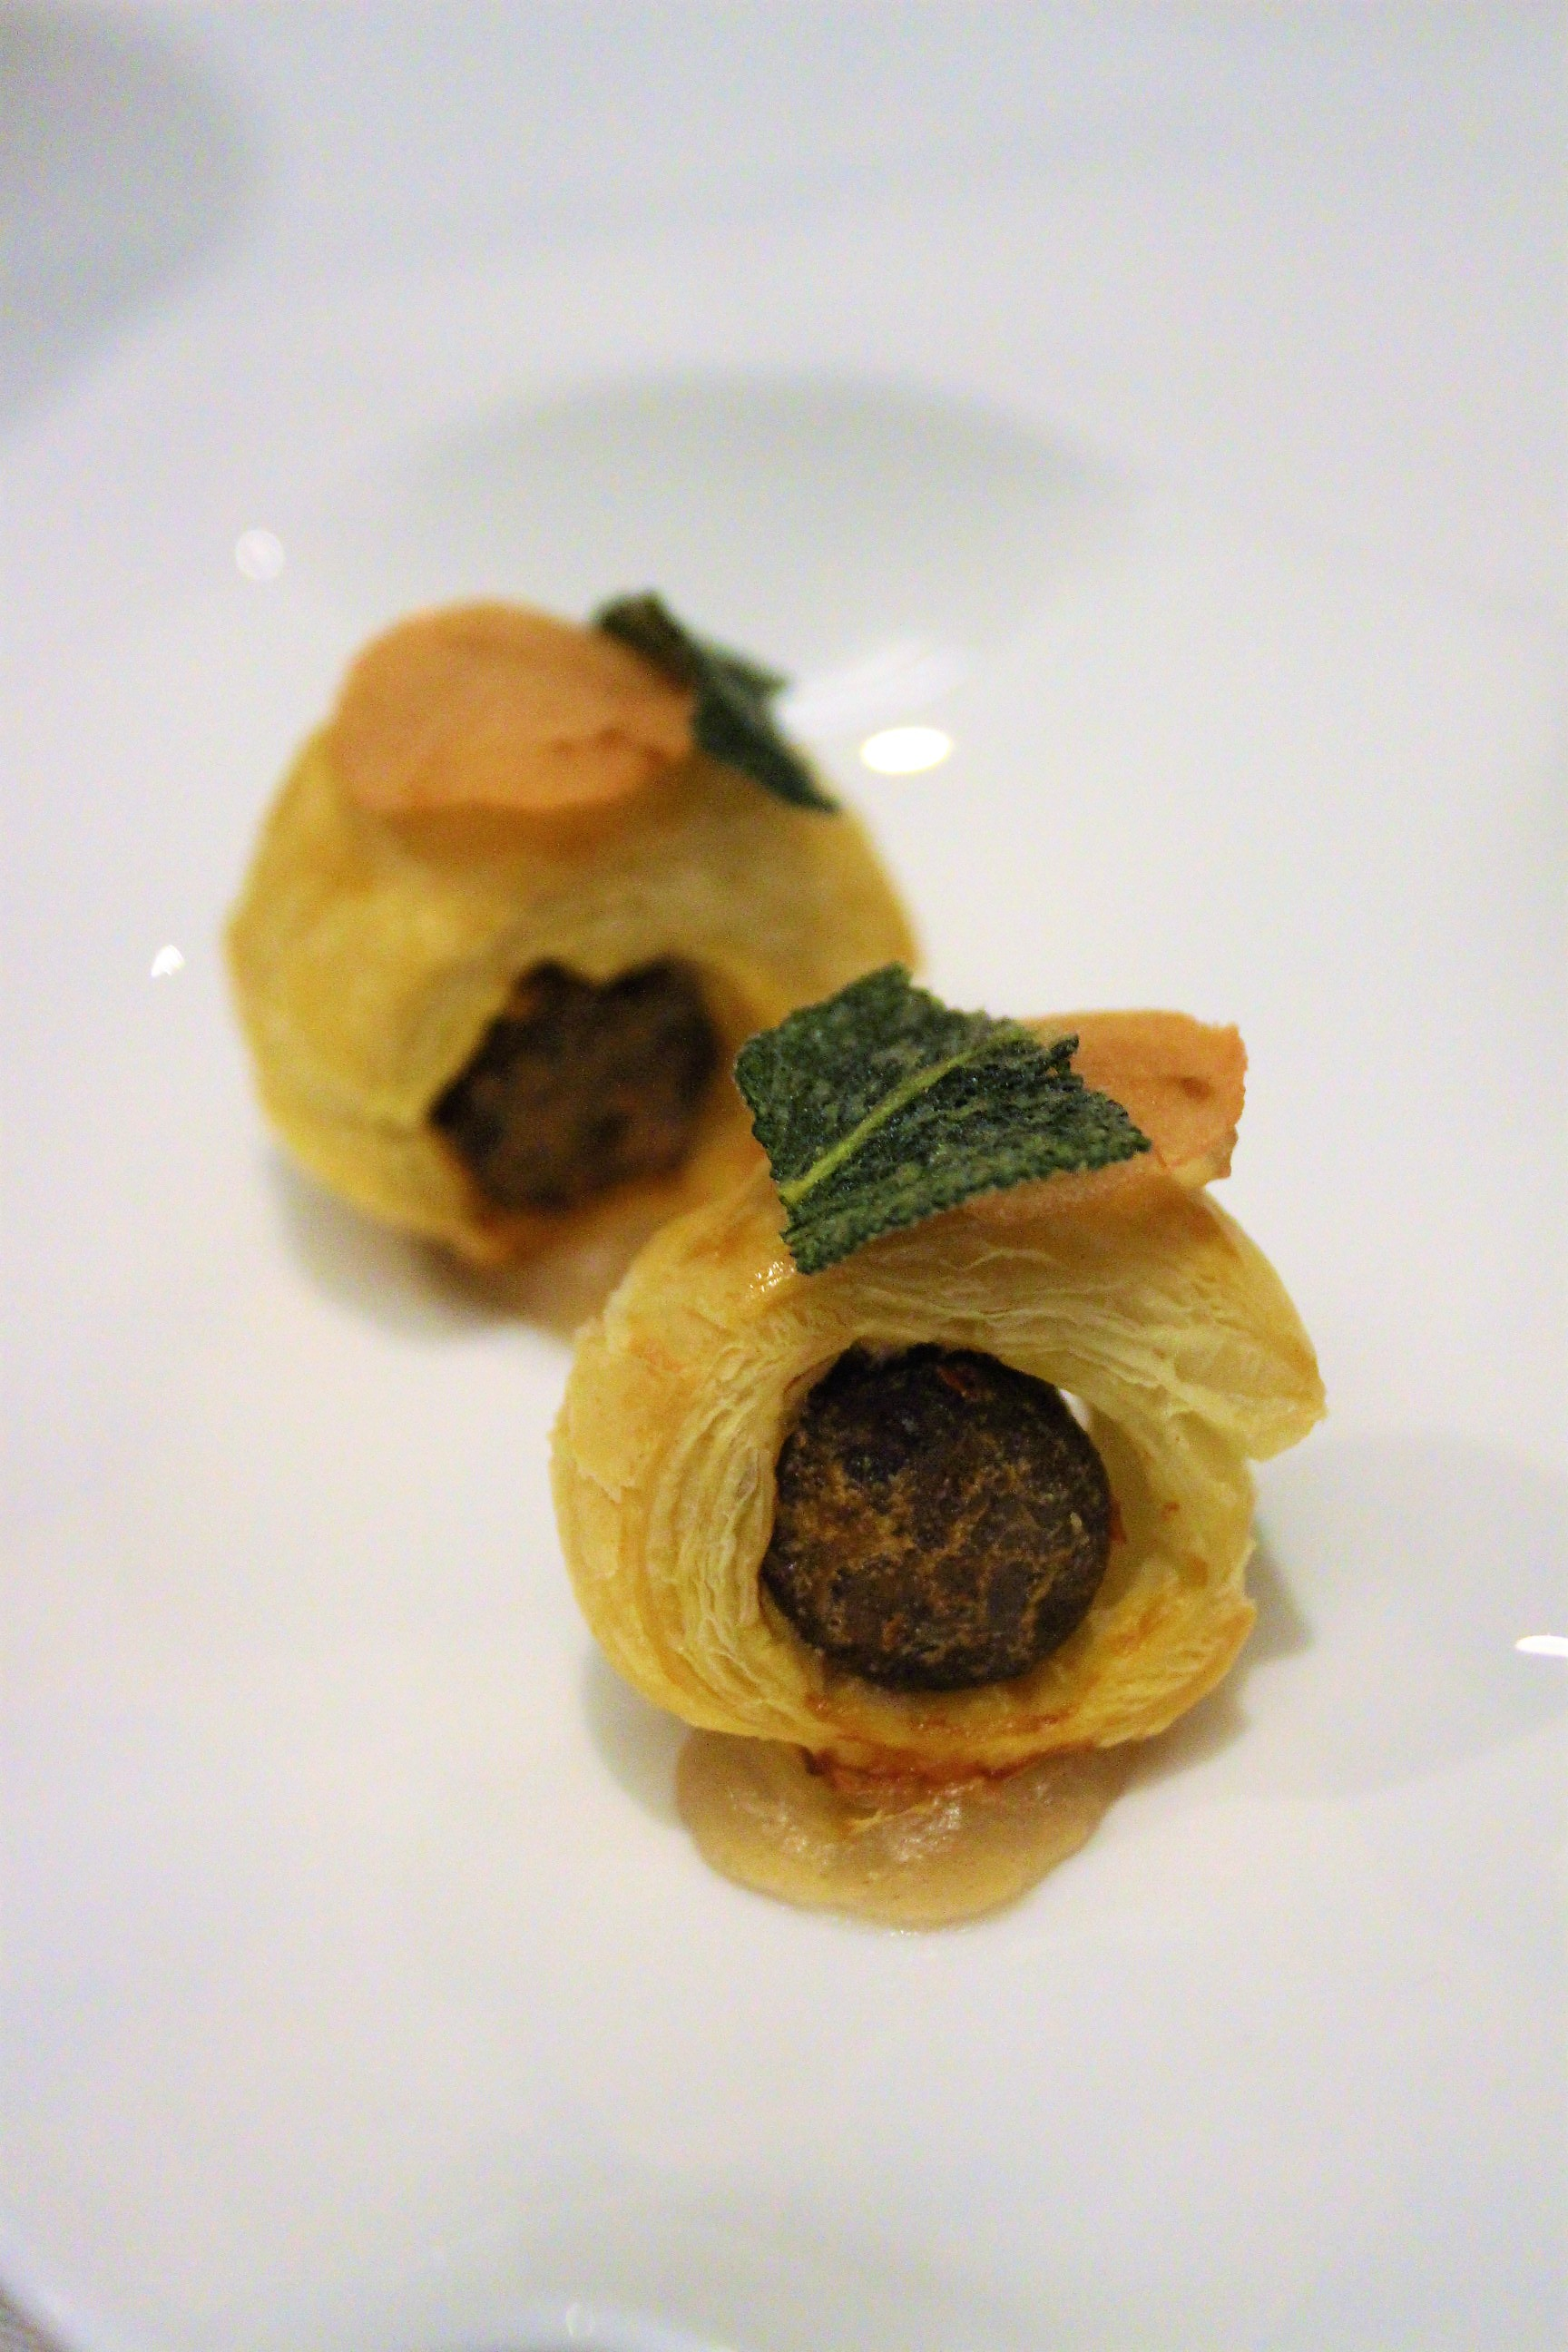 Lamb Sausage Wrapped in Puff Pastry at Gabriel Kreuther in New York City